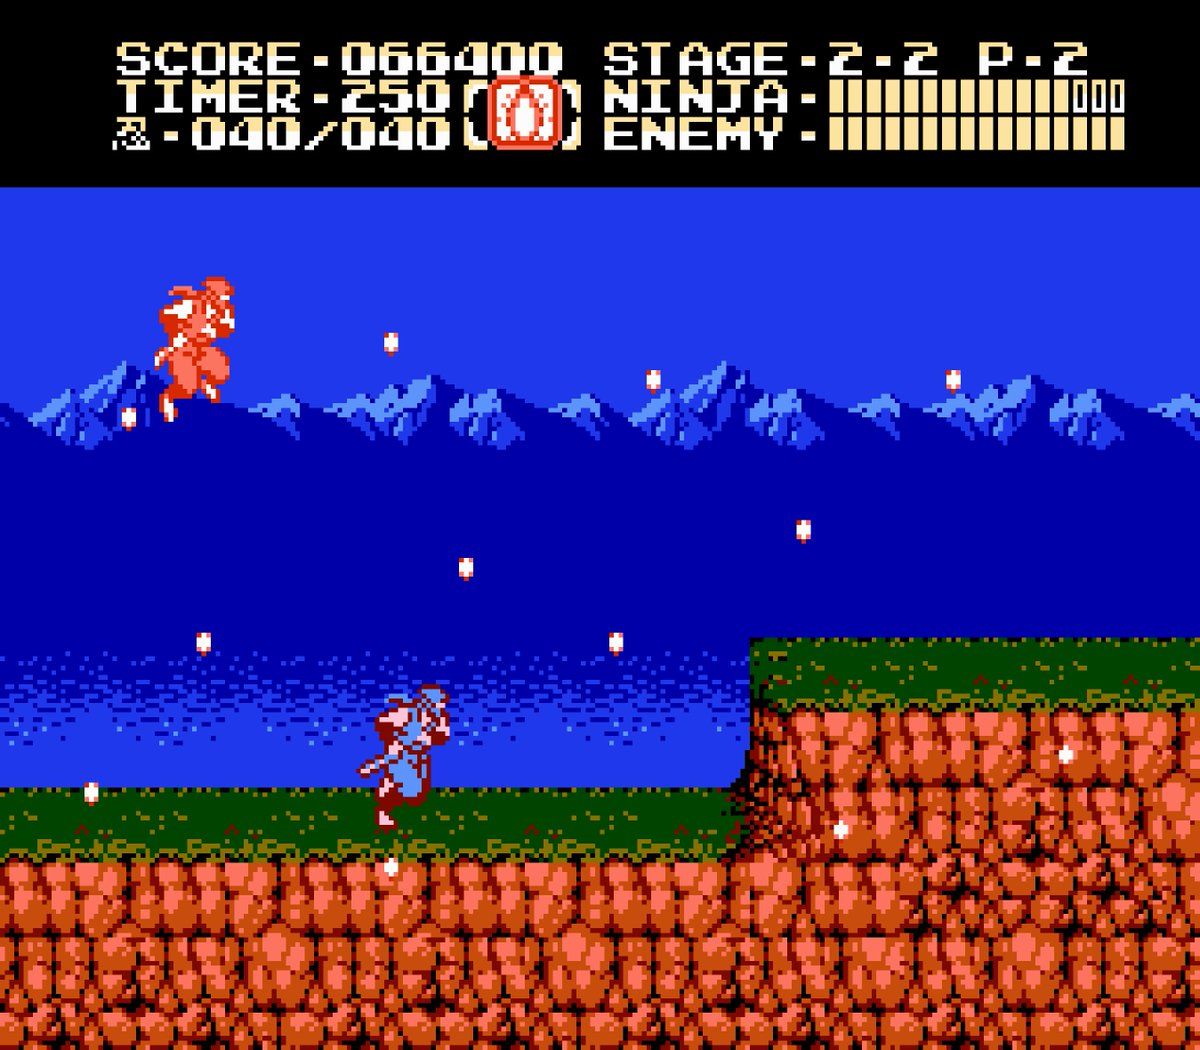 Loren Schmidt On Twitter Here S Another Which Caught My Eye Recently This Stone Earth Tile From The Second Ninja Gaiden 1990 This Is Nes Spec So 4 Colors Per Background Tile